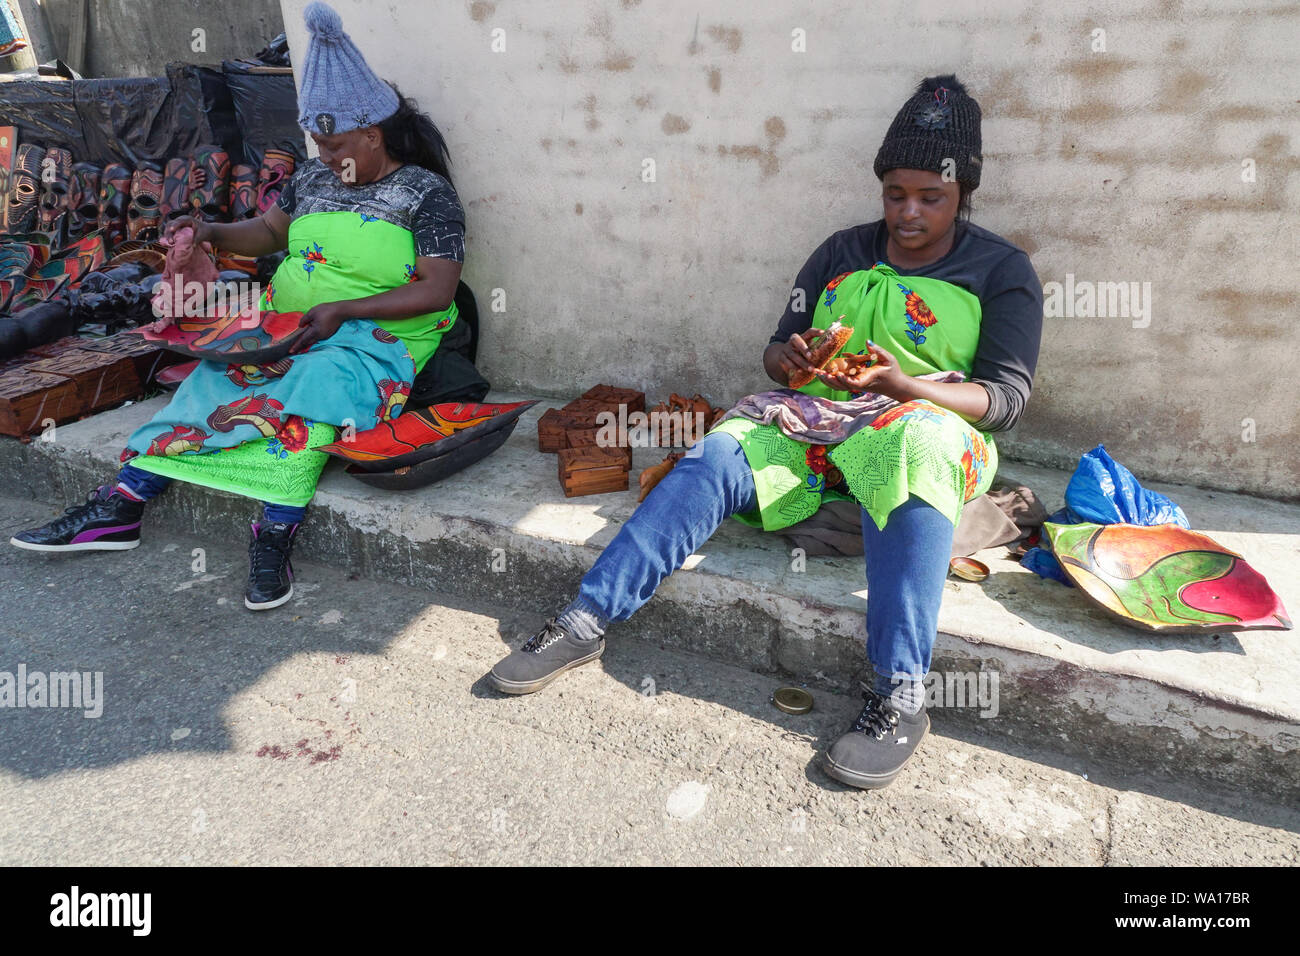 two black African ladies or women street vendors sitting working on goods or wooden items outside their stalls in Gods Window,Mpumalanga, South Africa Stock Photo